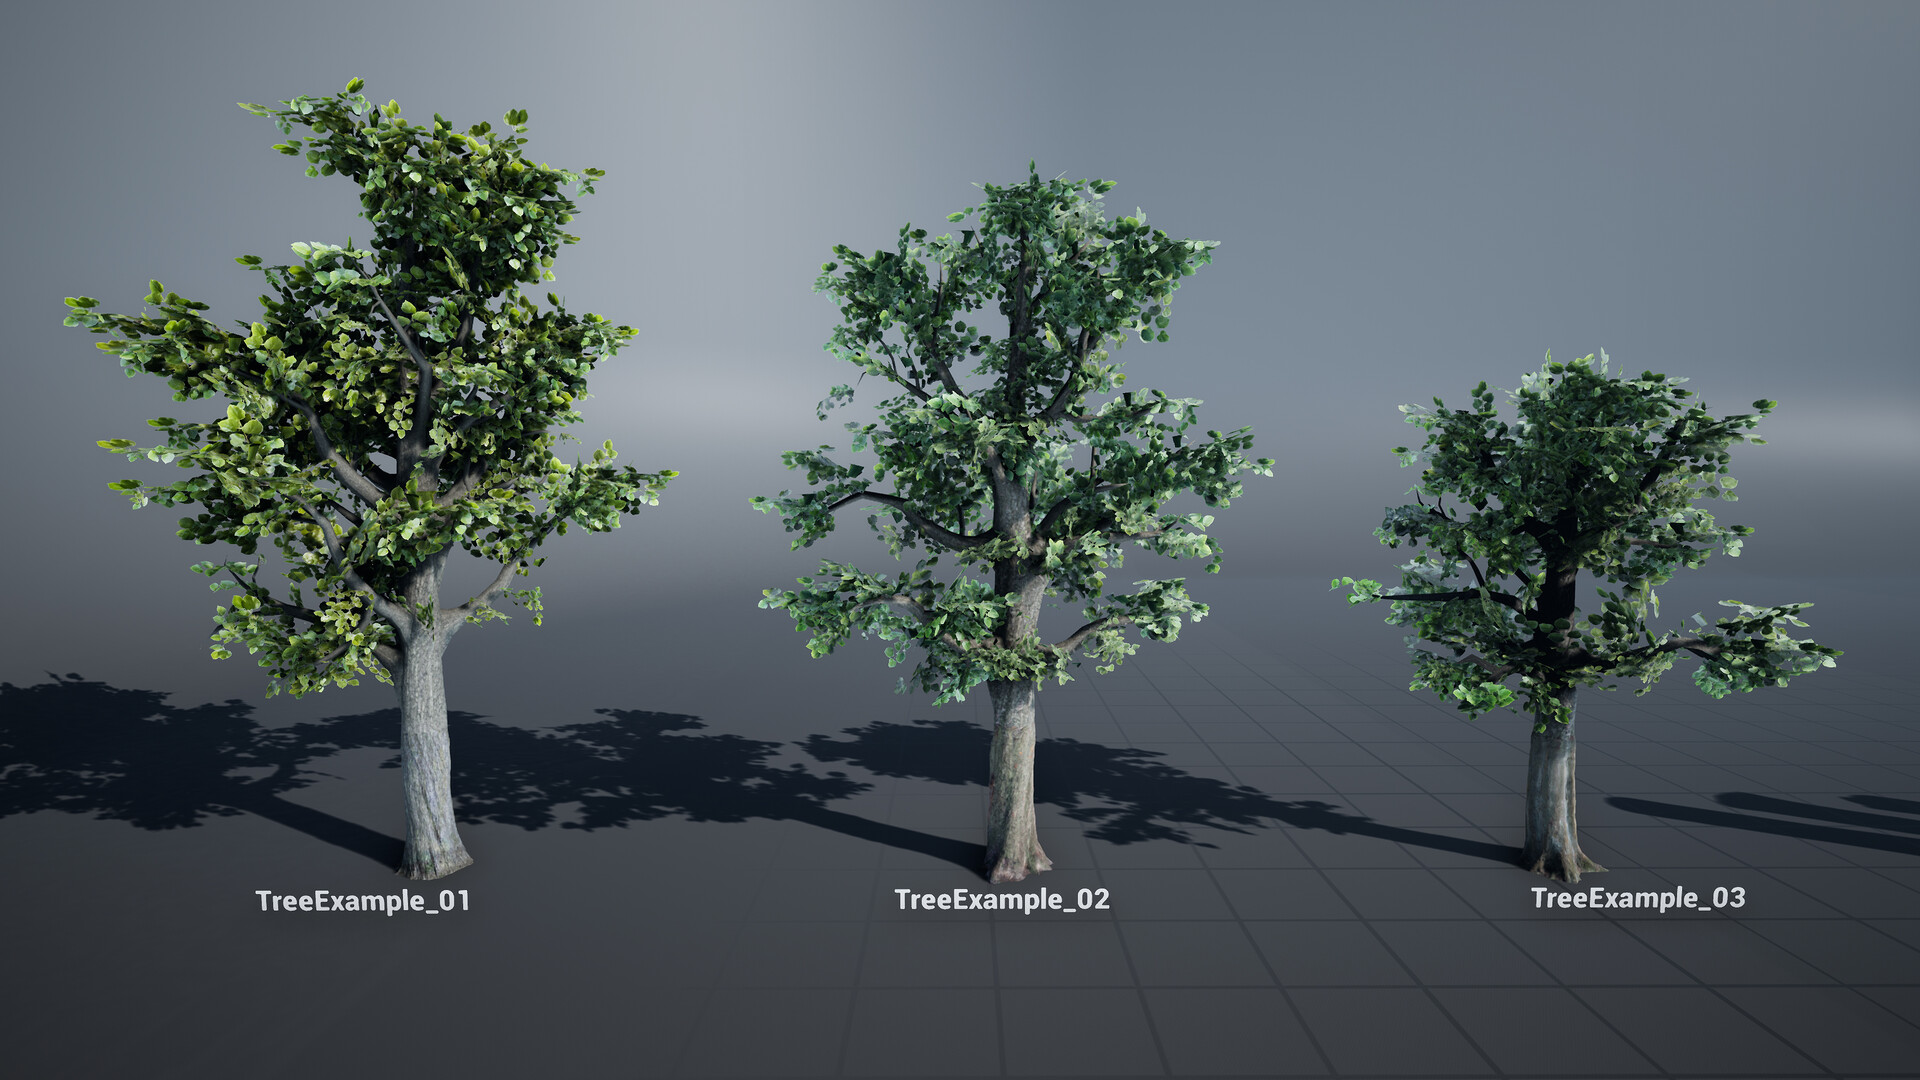 Trees created using the unique trunks, tiling textures and unique branches, all scanned.